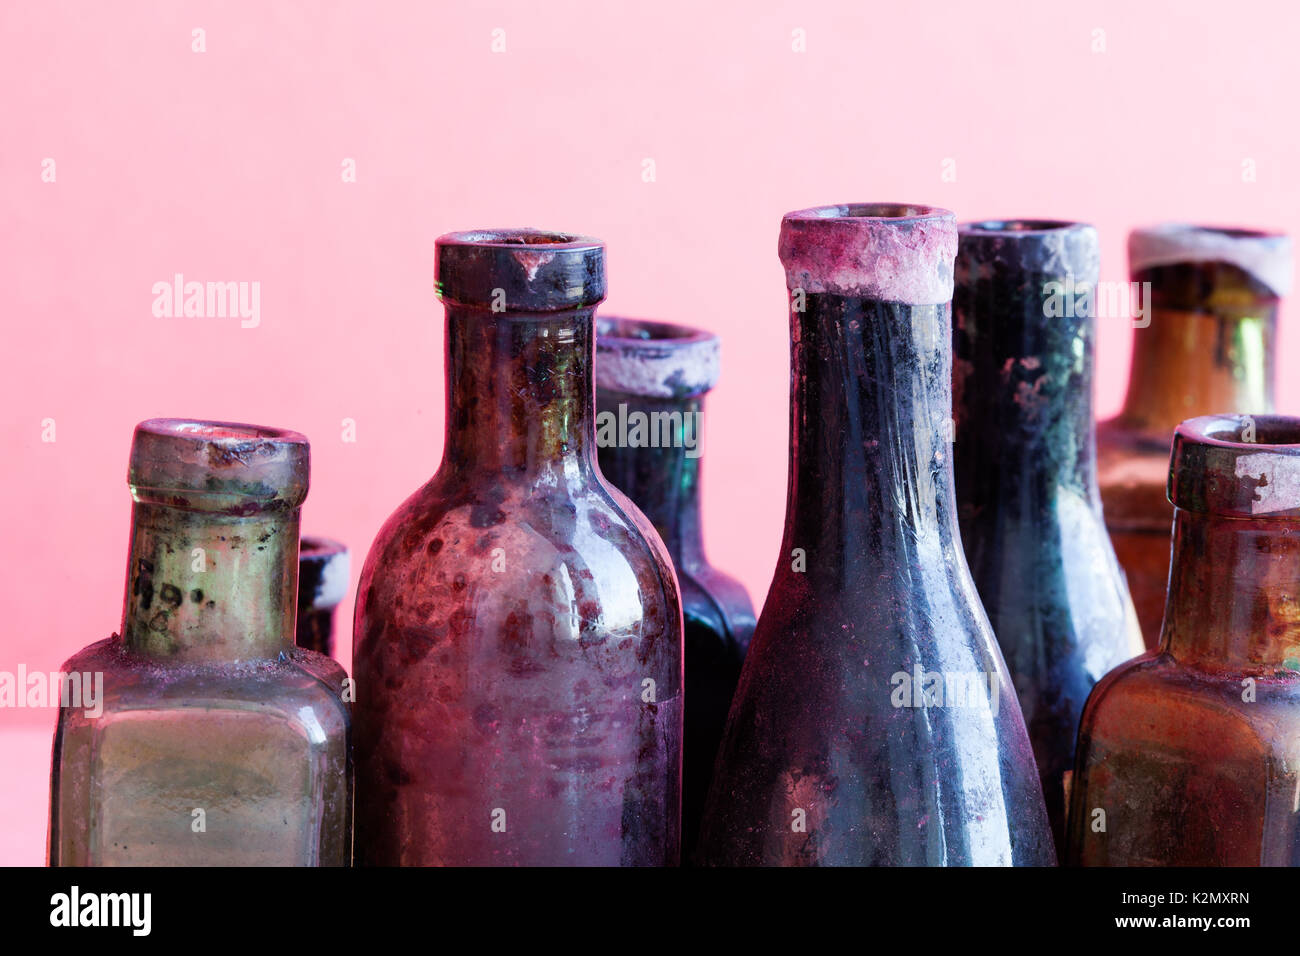 Retro design bottles macro view. Colorful dirty glass flacon set. Pink background, shallow depth of field - Stock Image